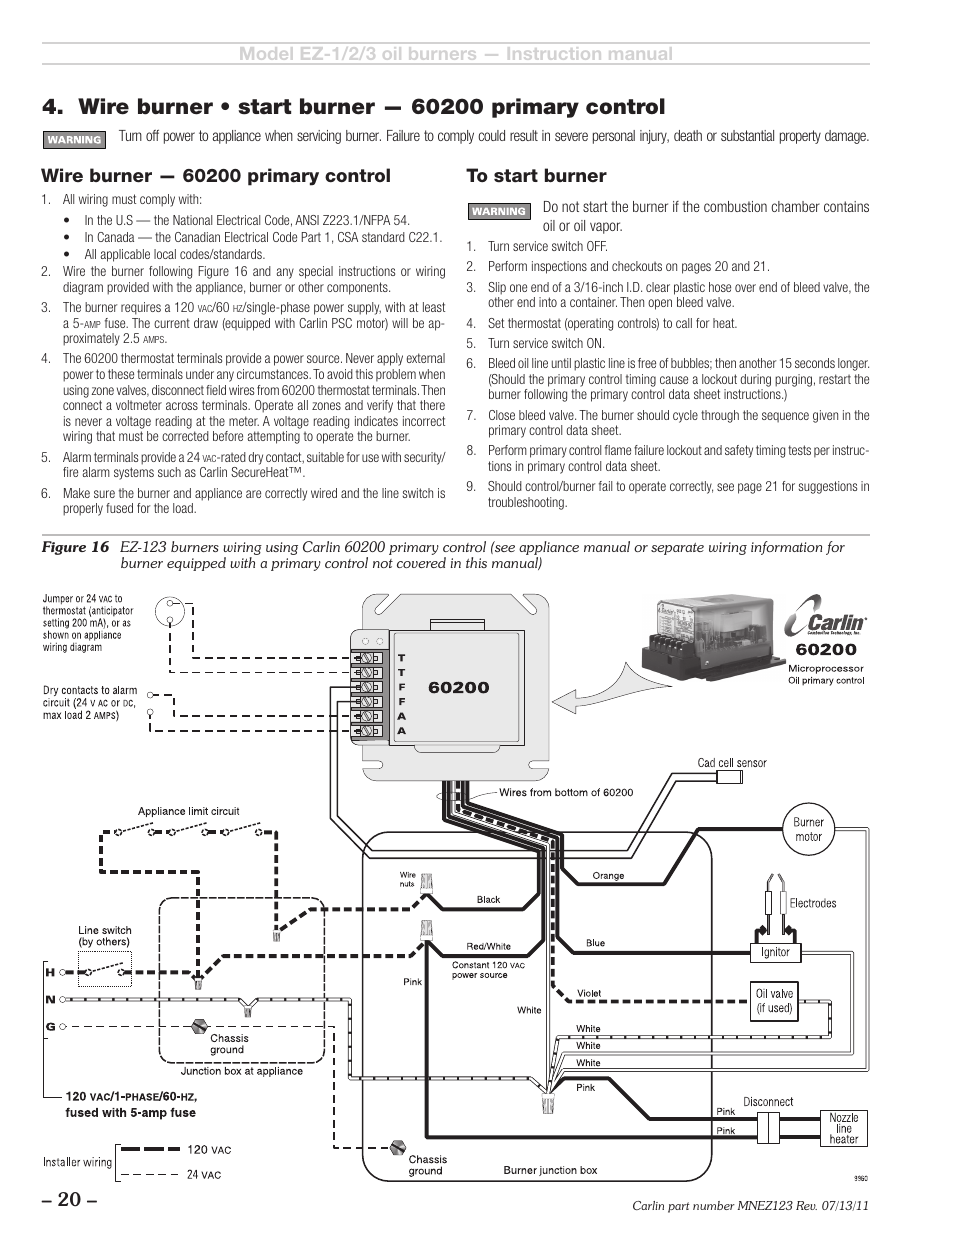 Carlin EZ123 User Manual   Page 20  28